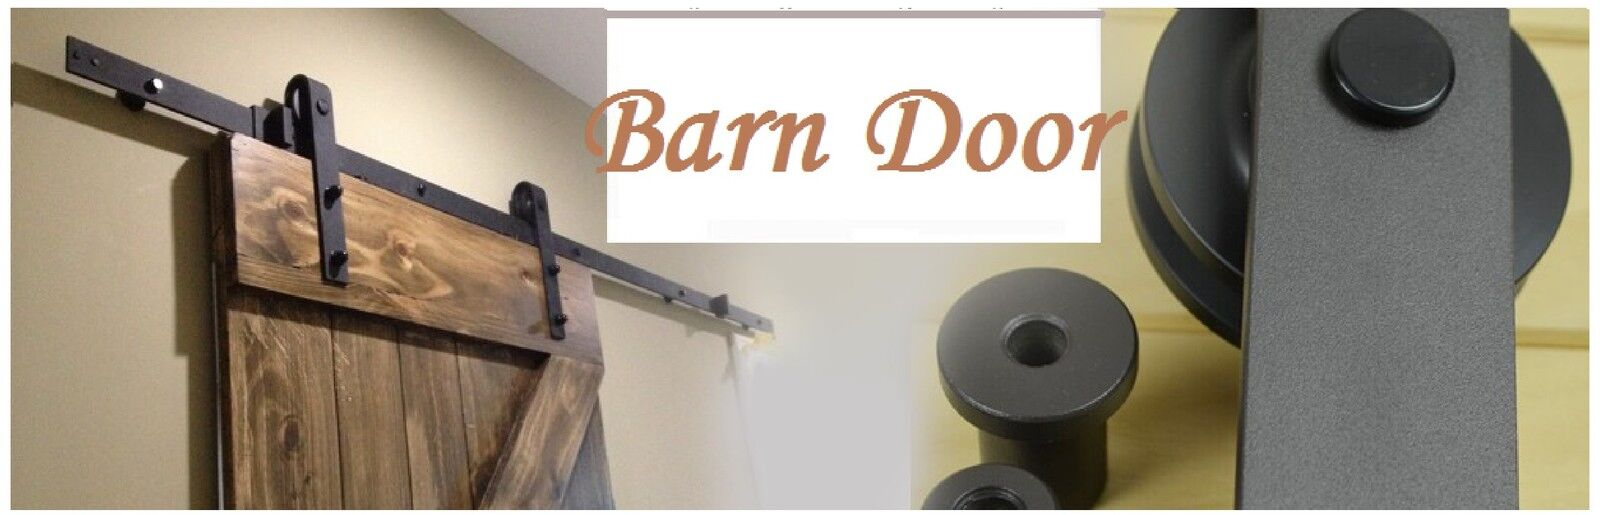 Barn door shop